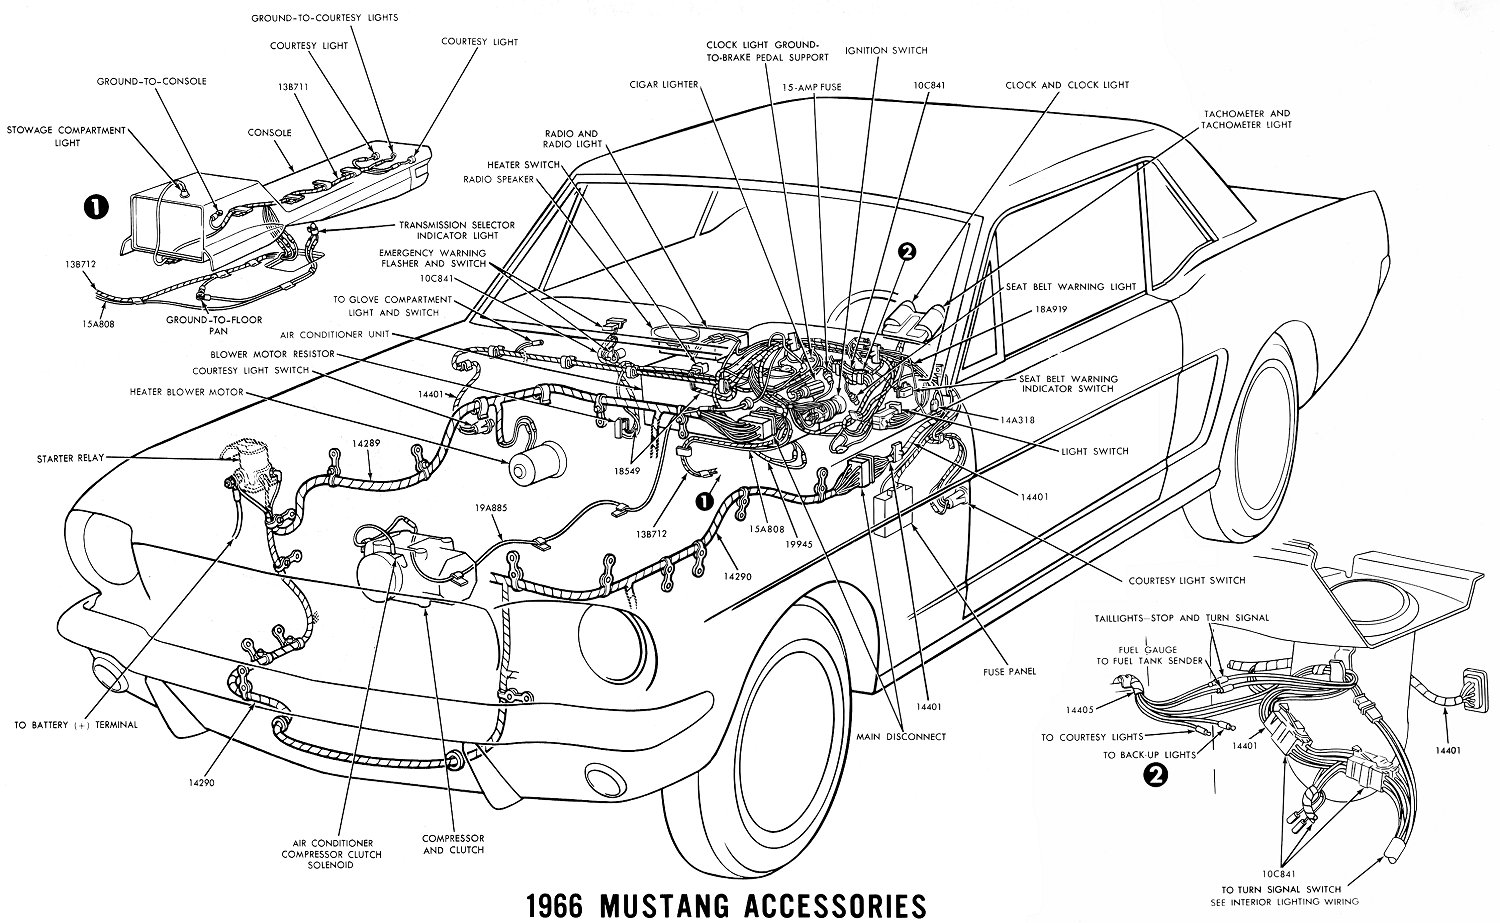 1966 Mustang Wiring Diagrams Average Joe Restoration Emergency Switch Diagram Sm66acc Accessories Schematic